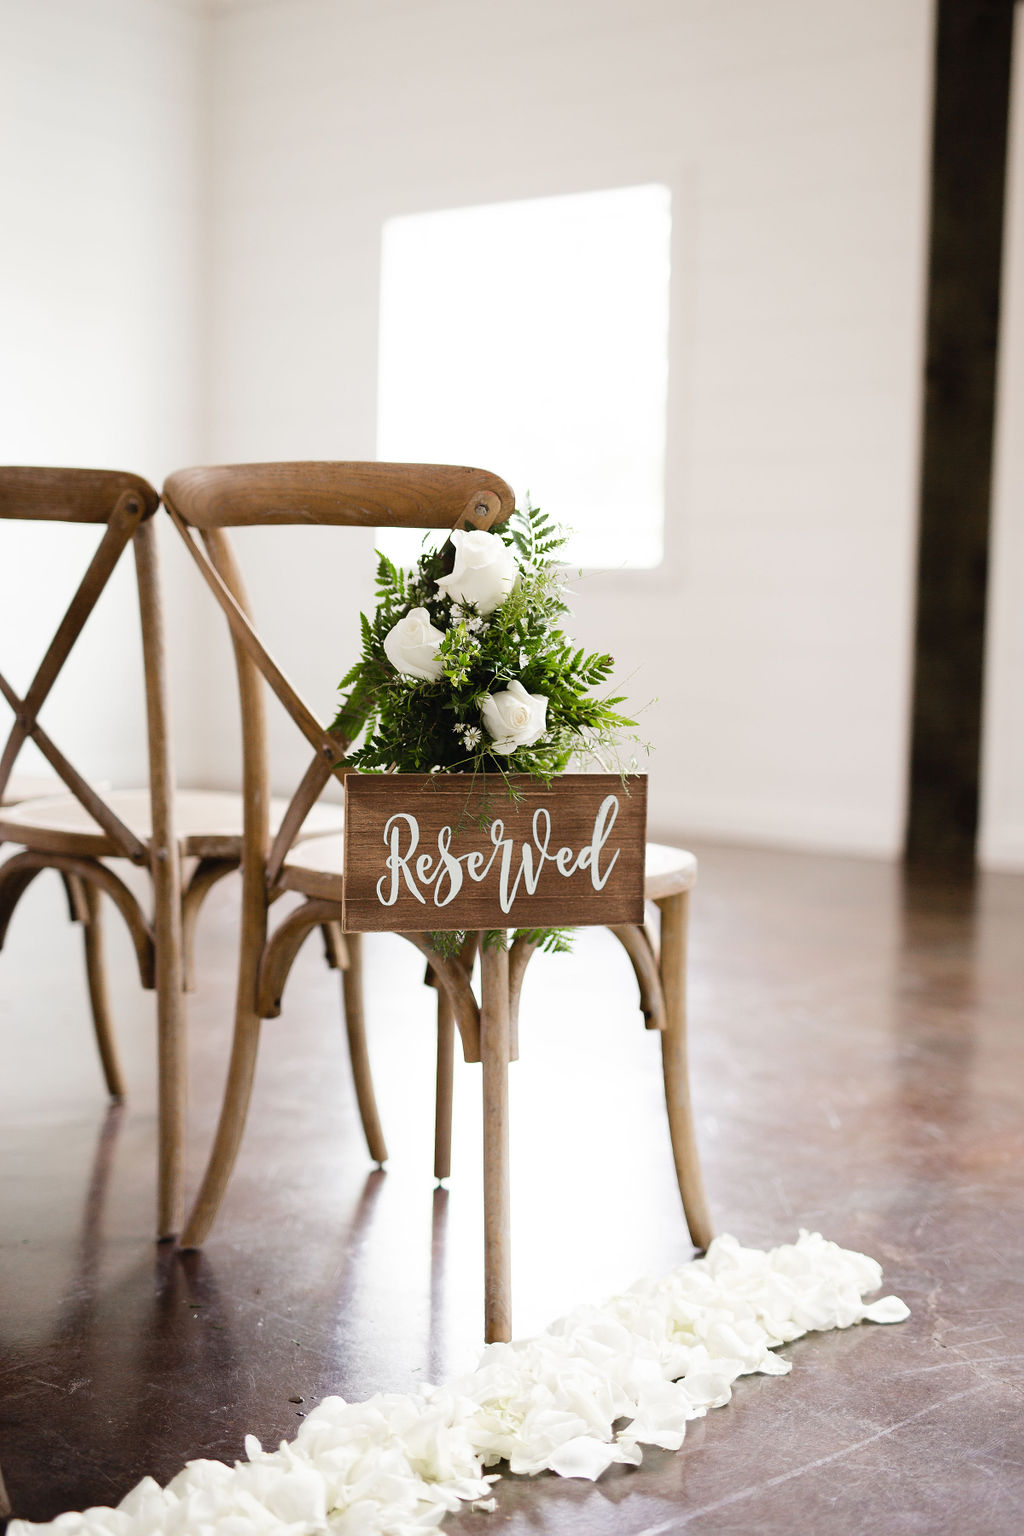 Wooden wedding ceremony chair sign